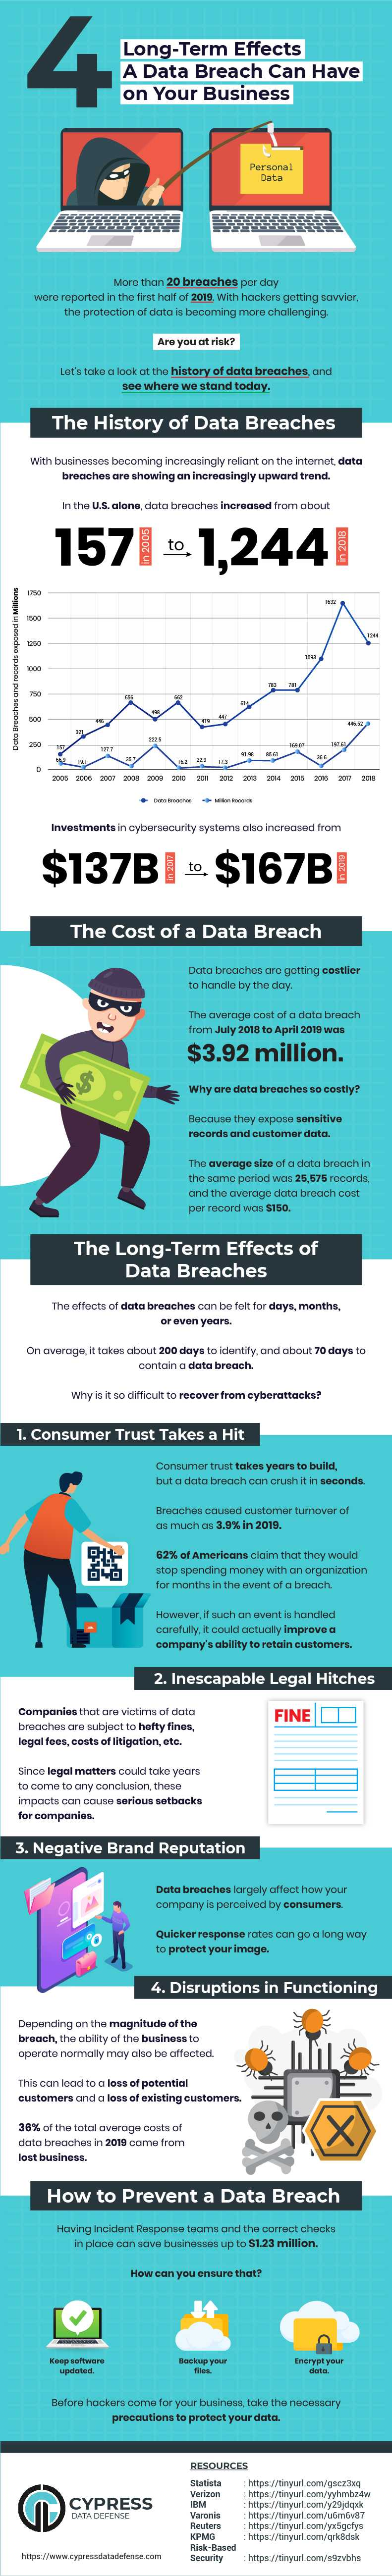 Long Term Effects a Data Breach Can Have on Your Business-Infographic